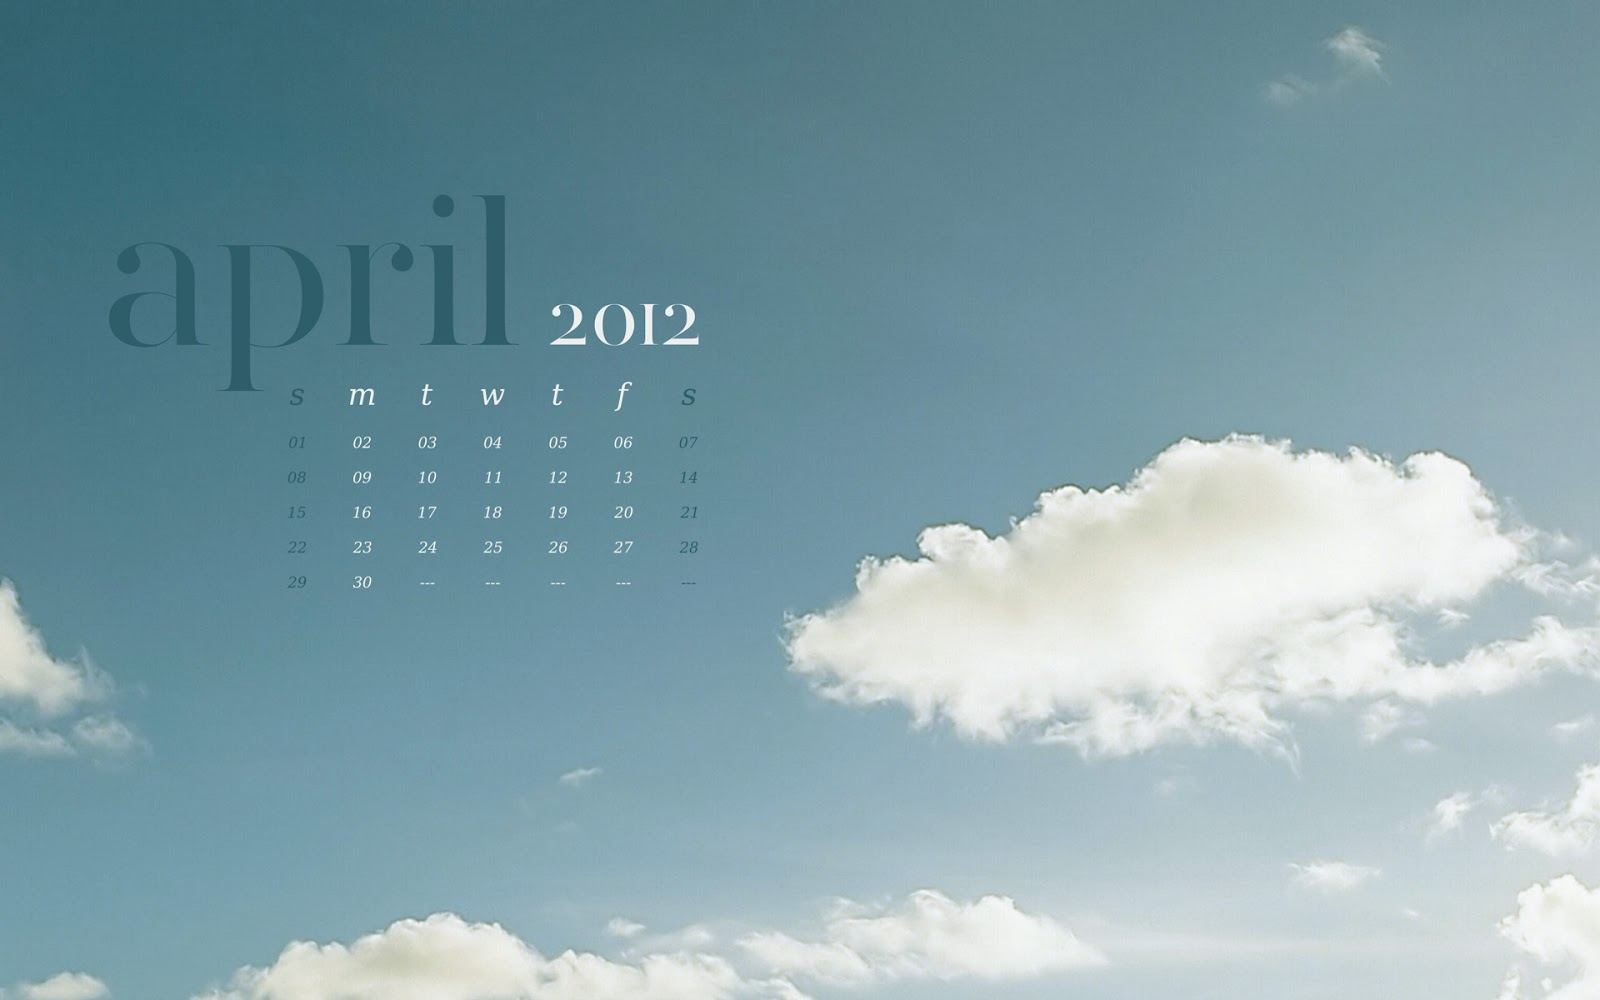 Calendar April 2012 wallpaper background skies